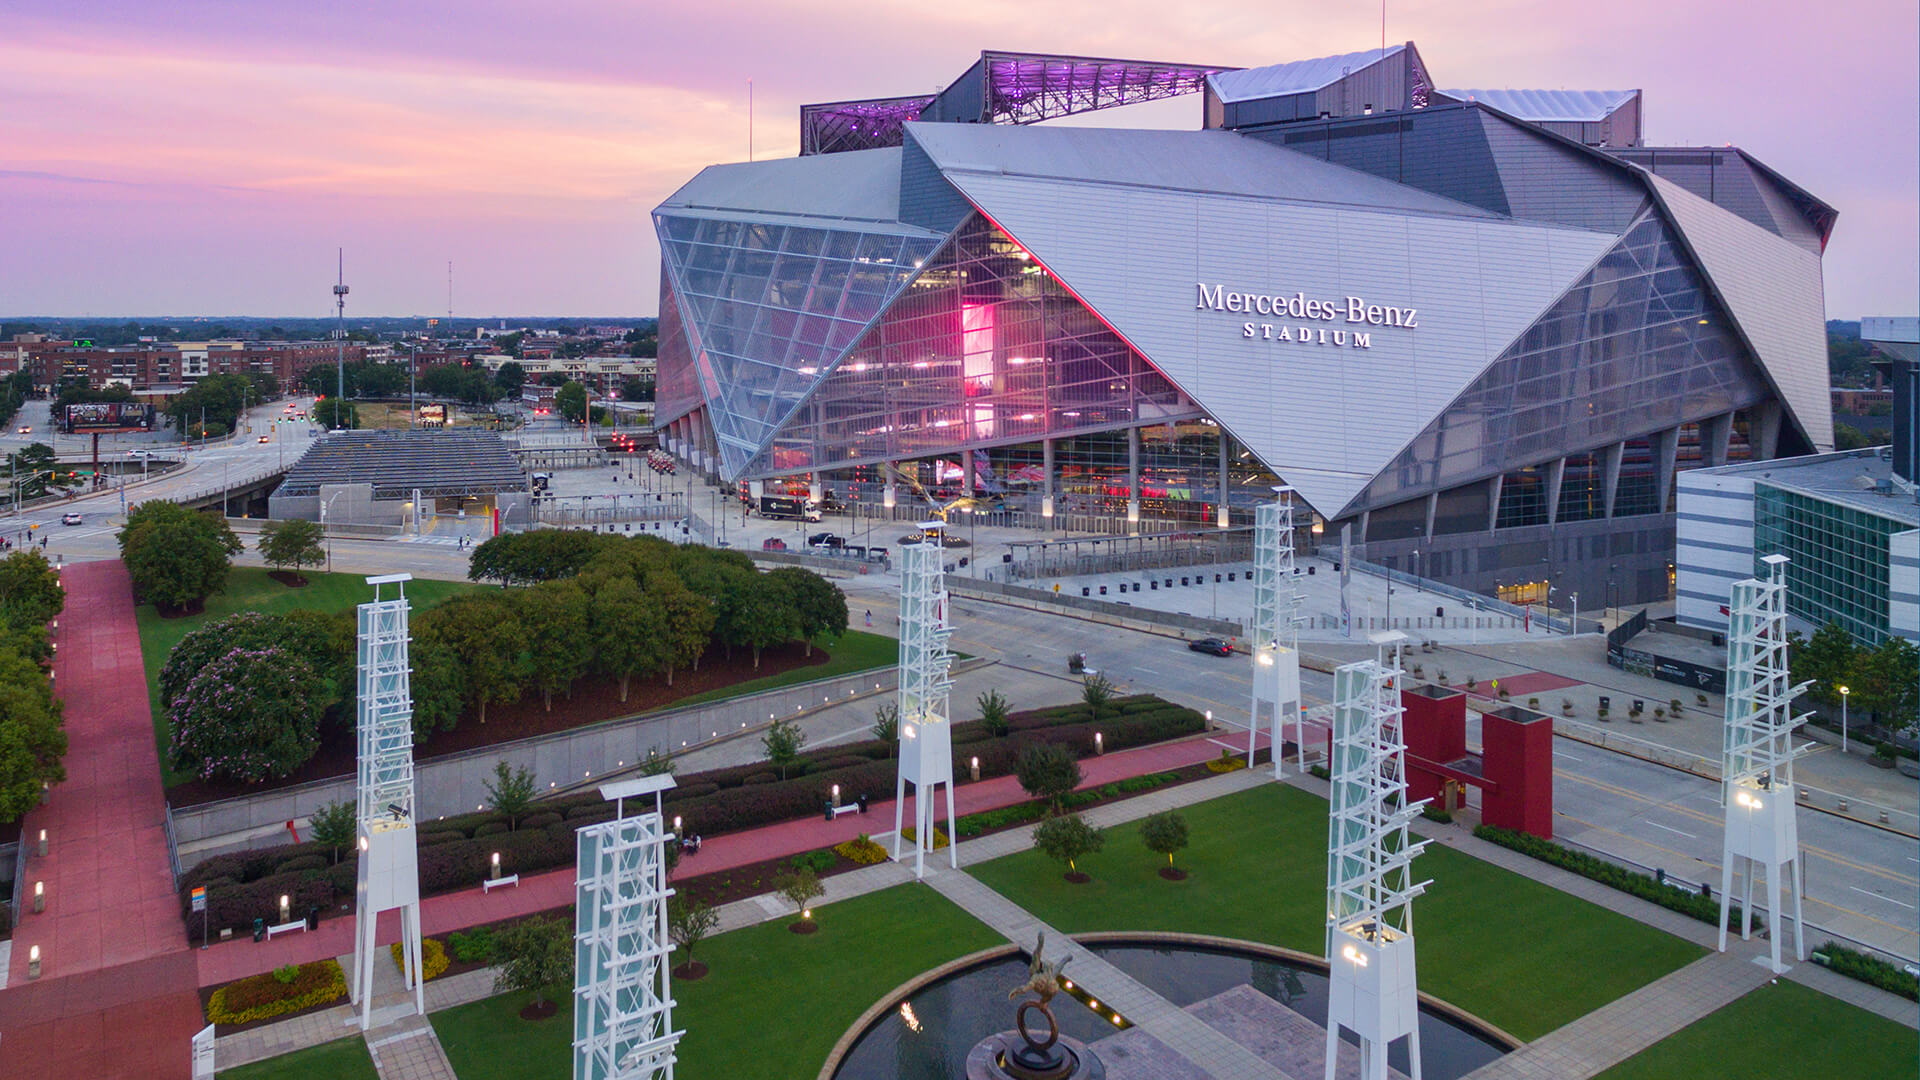 6 things to know about Mercedes-Benz Stadium